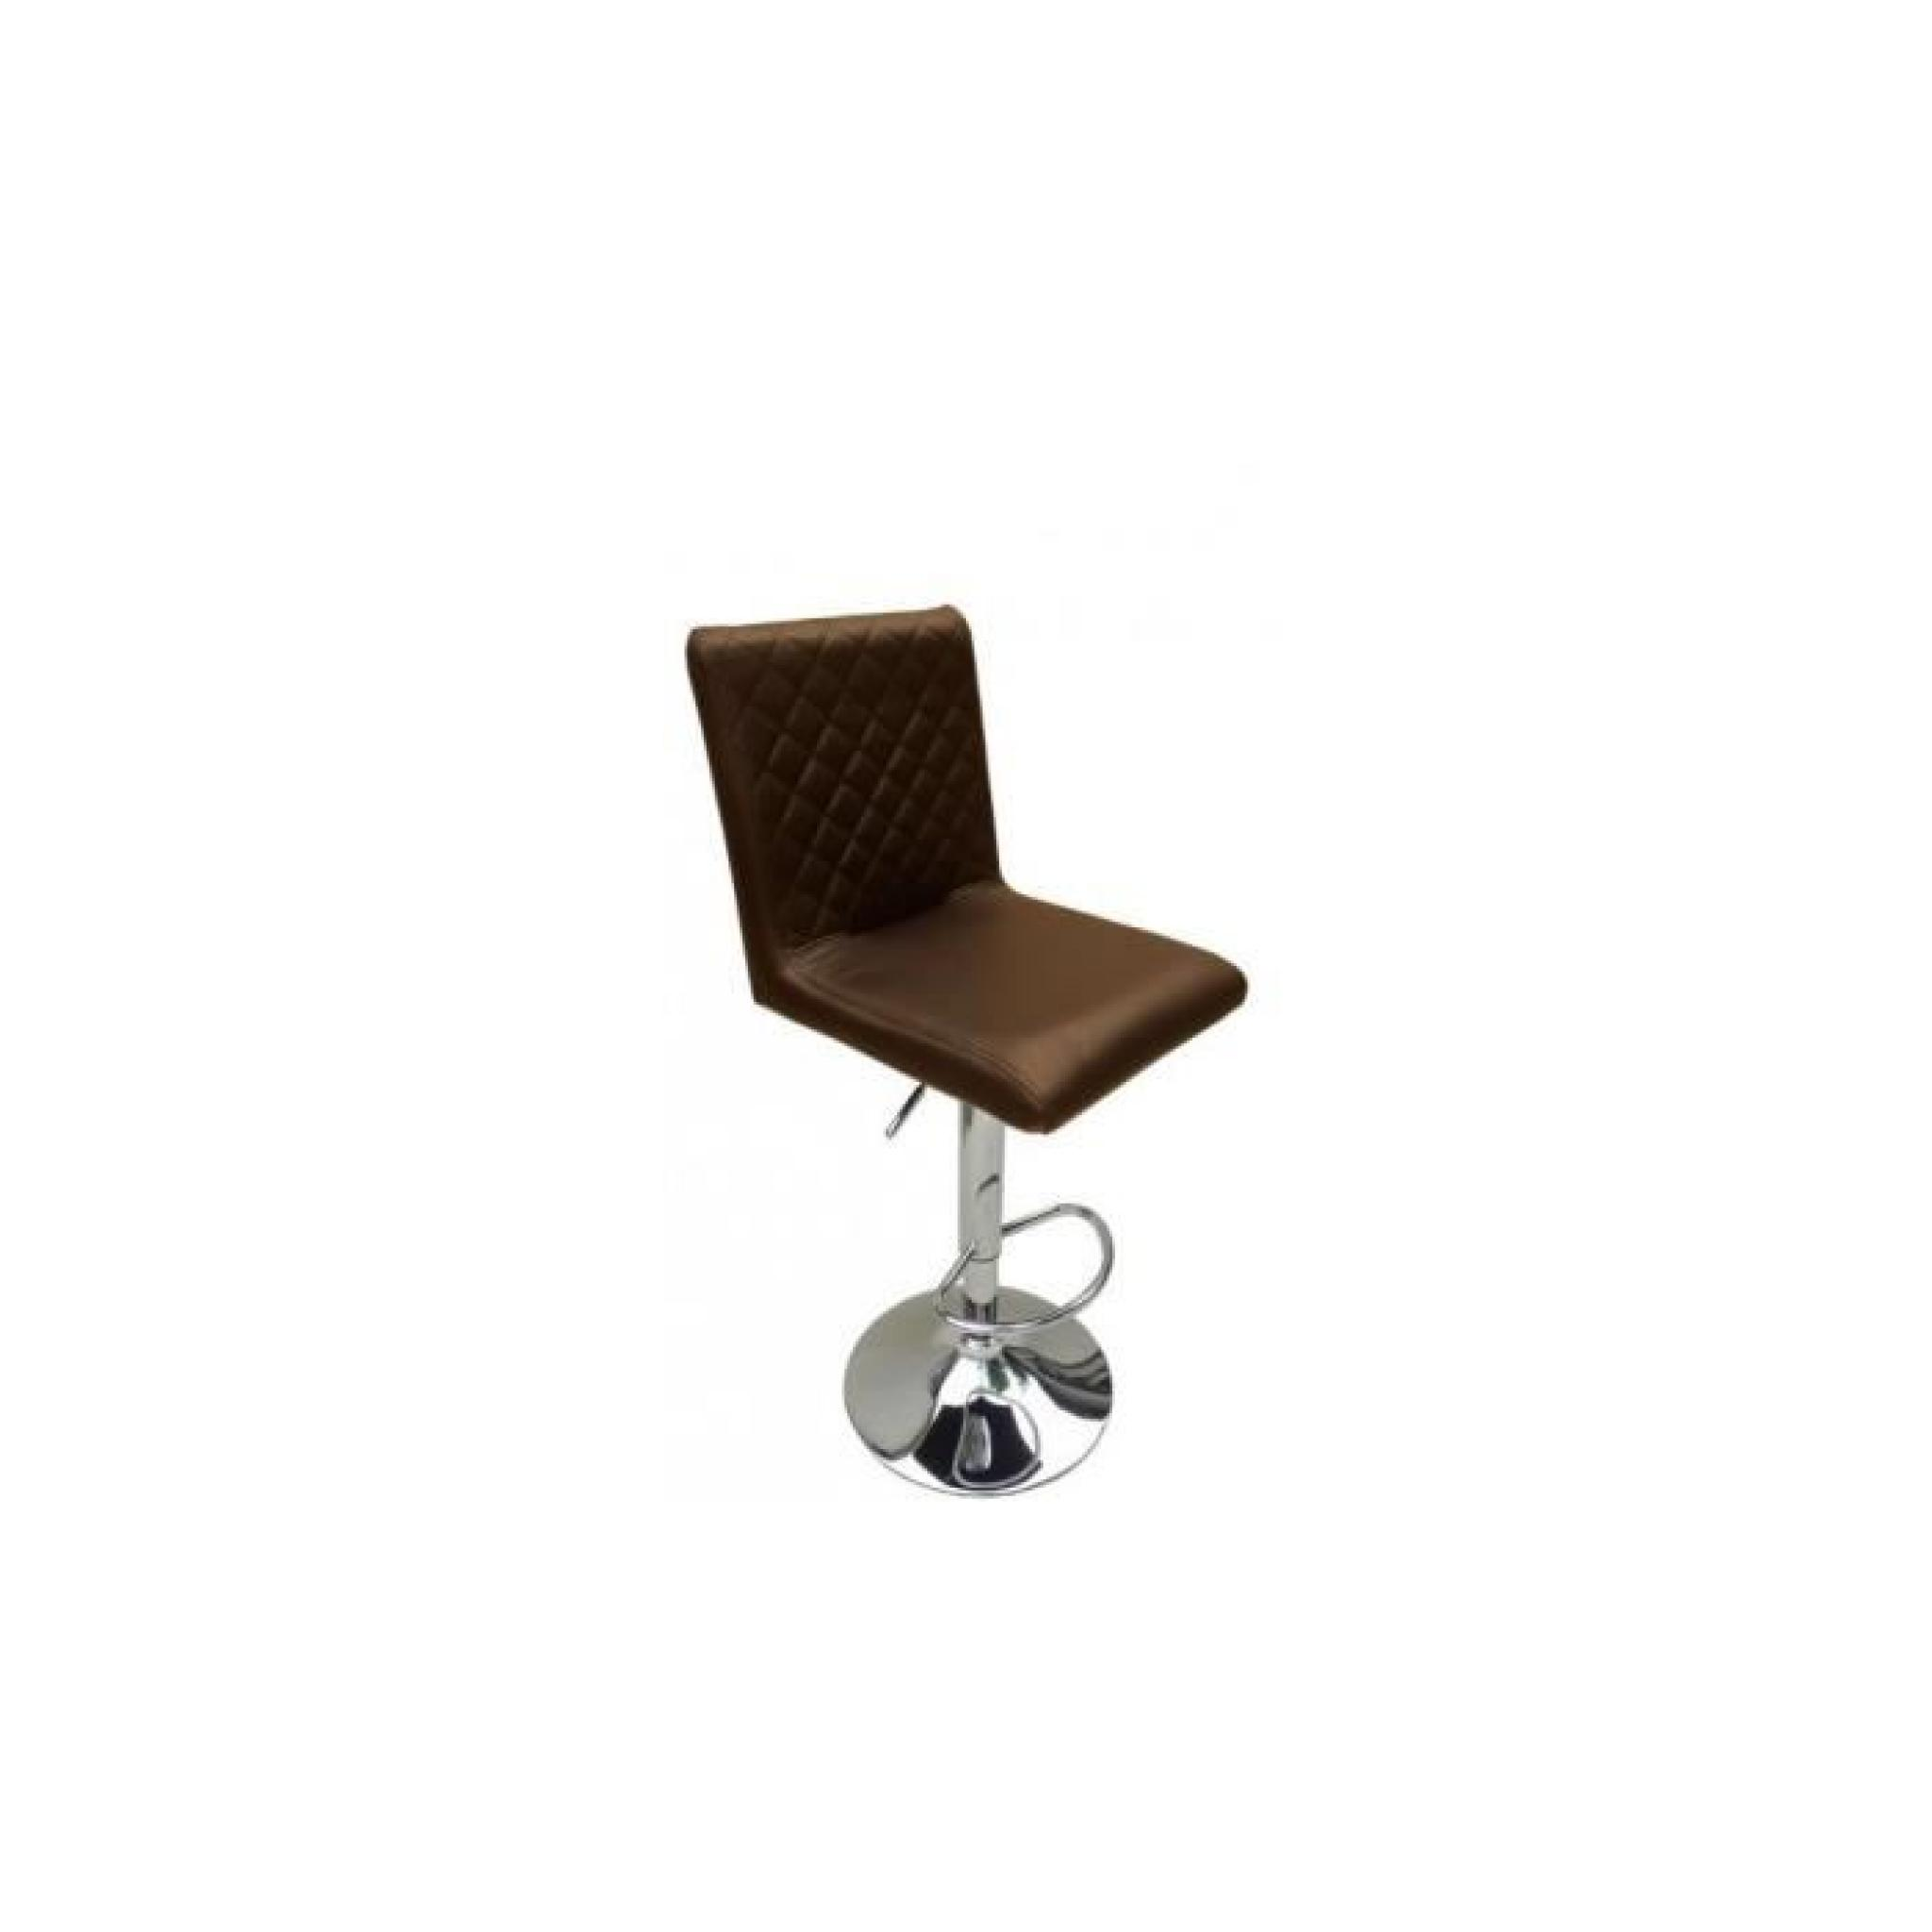 Justhome tabouret de bar hc 1145 couleur chocolat - Tabouret de bar couleur ...